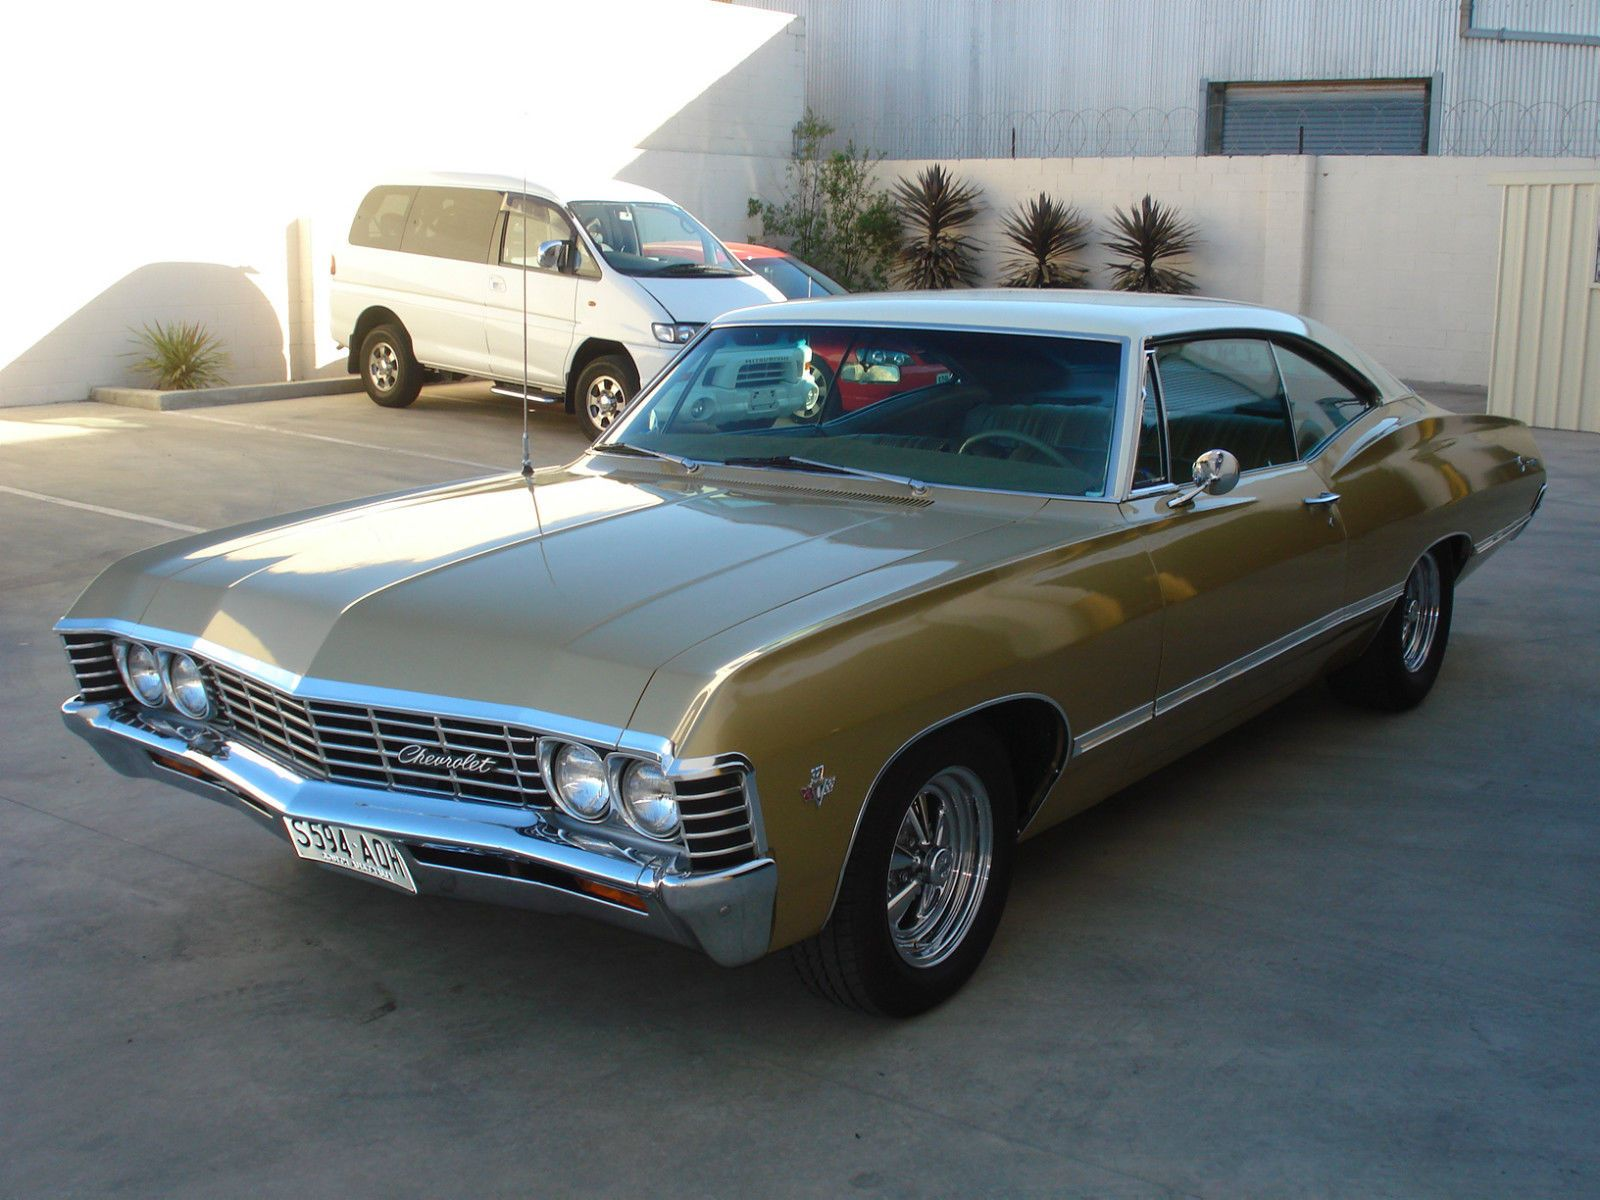 1967 chevrolet impala 2 door pillarless sport coupe this is a recent import but